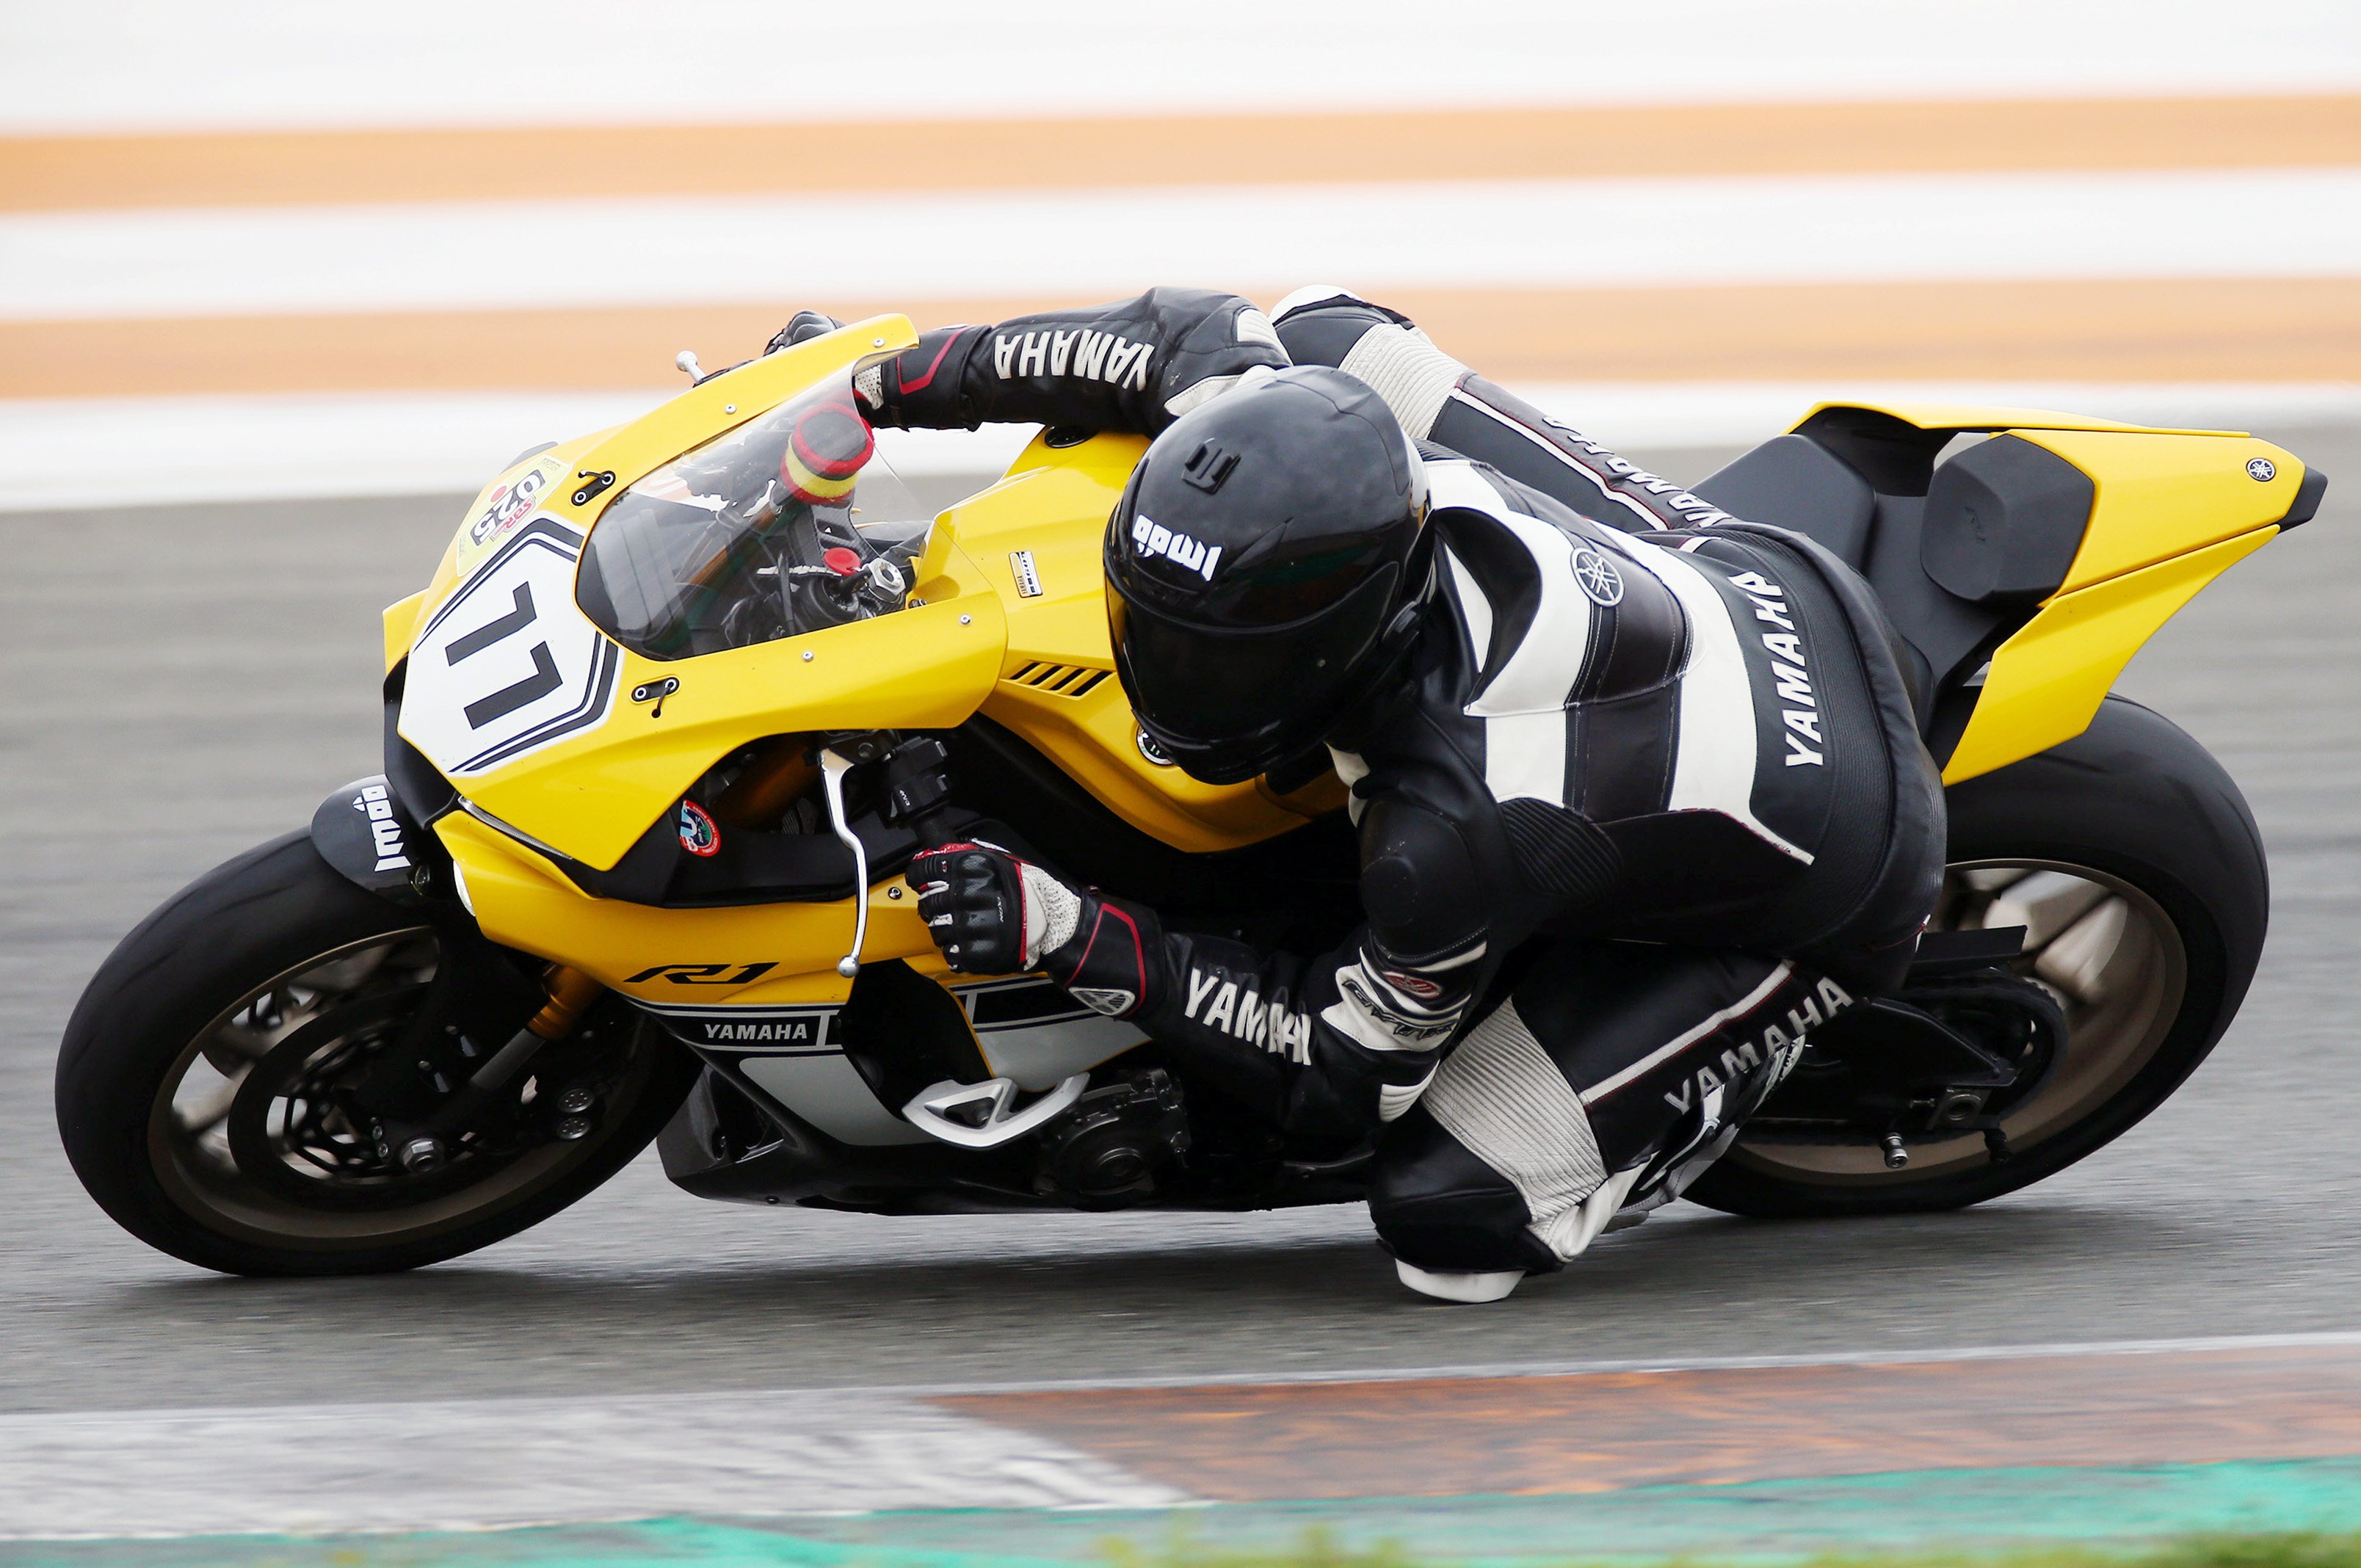 Motorcycle Racer Being Fearless and Maintaining Composure